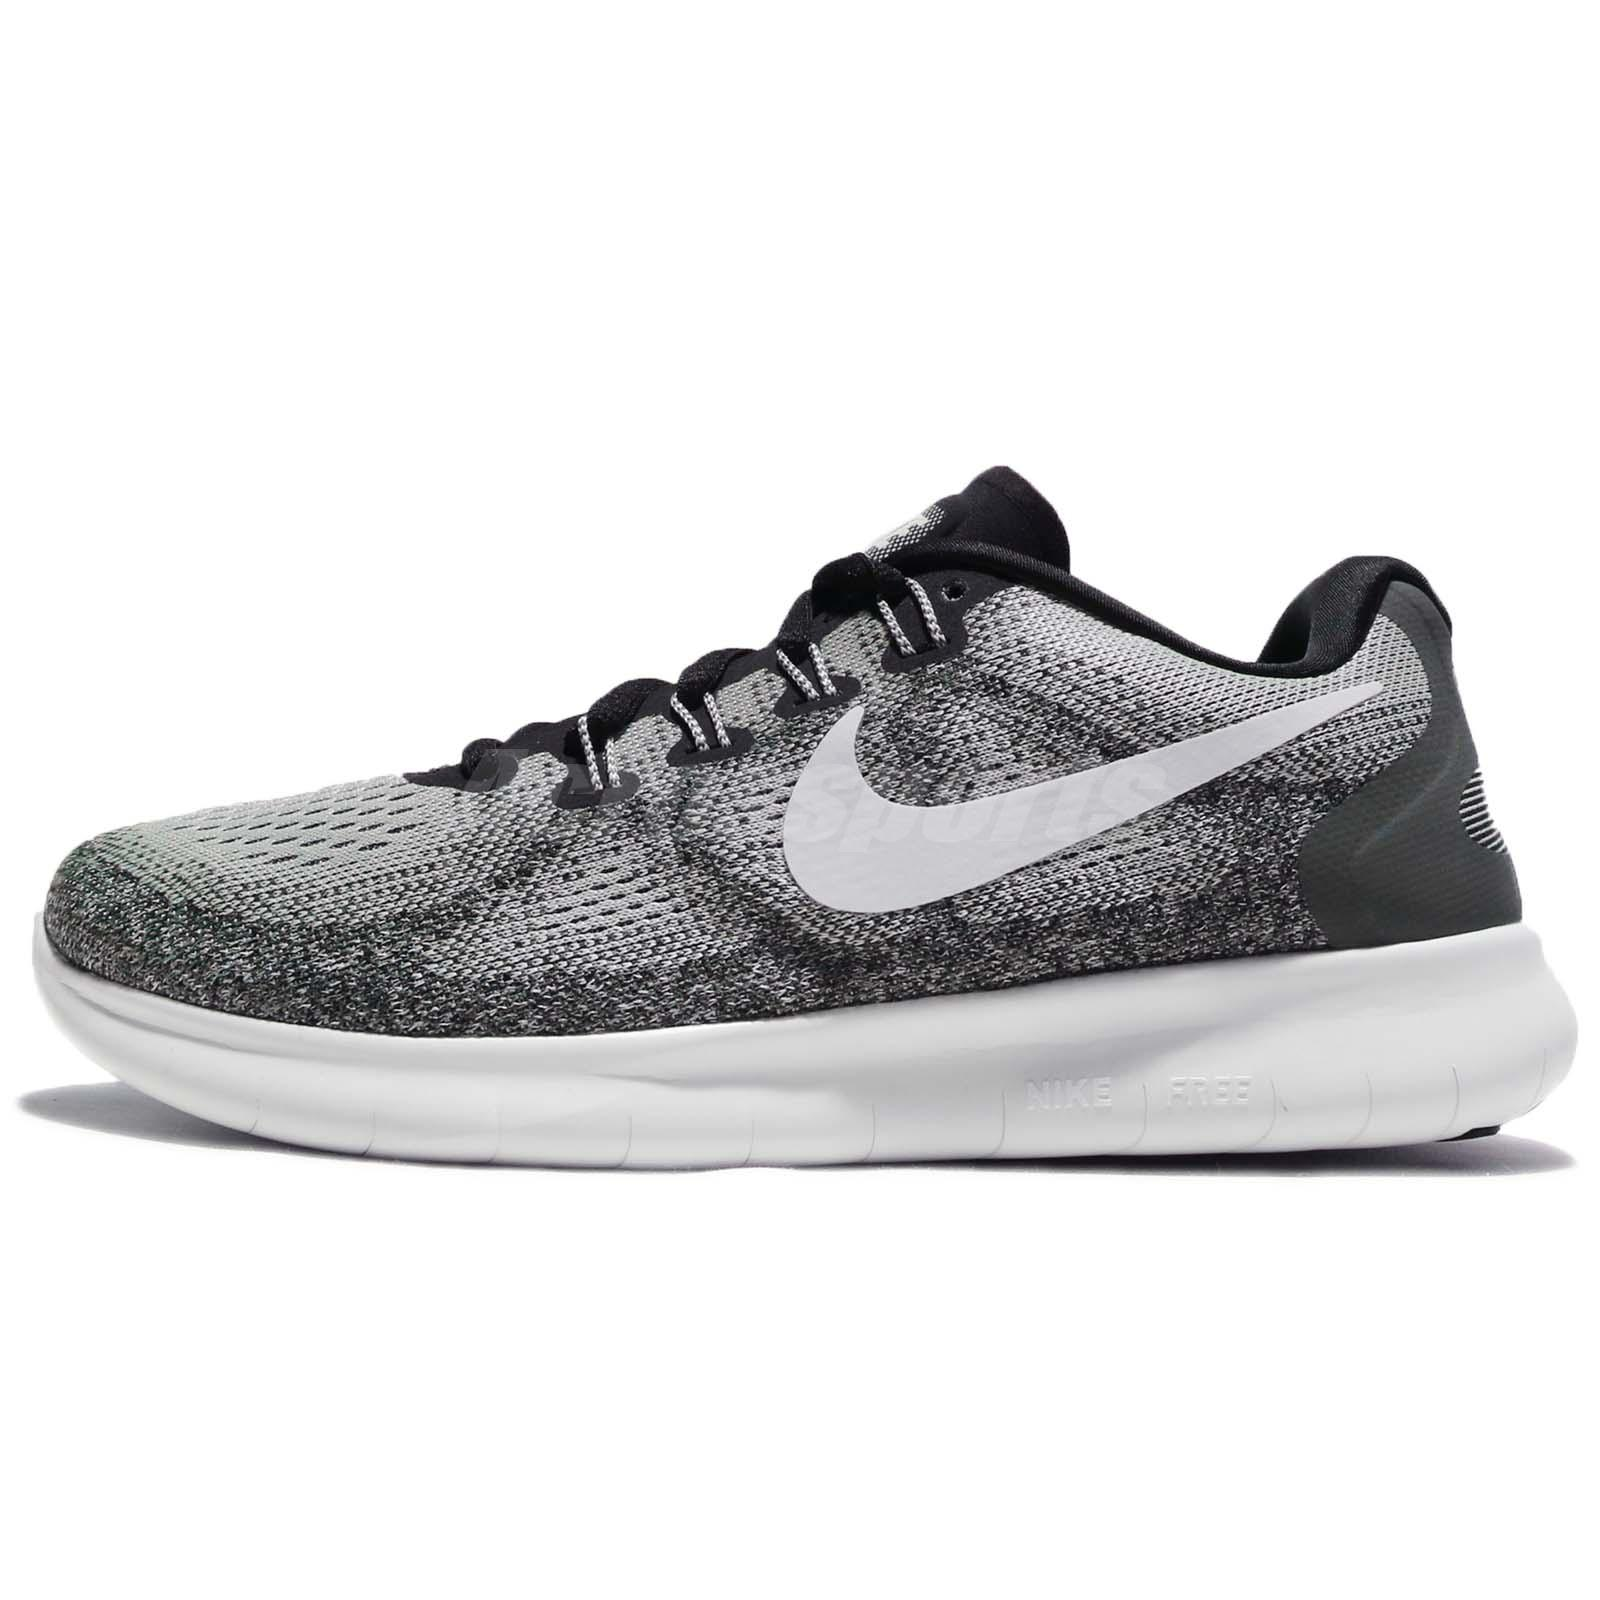 0fac1a6d9d828 Wmns Nike Free RN 2017 Run Grey White Women Running Shoes Sneakers 880840- 002